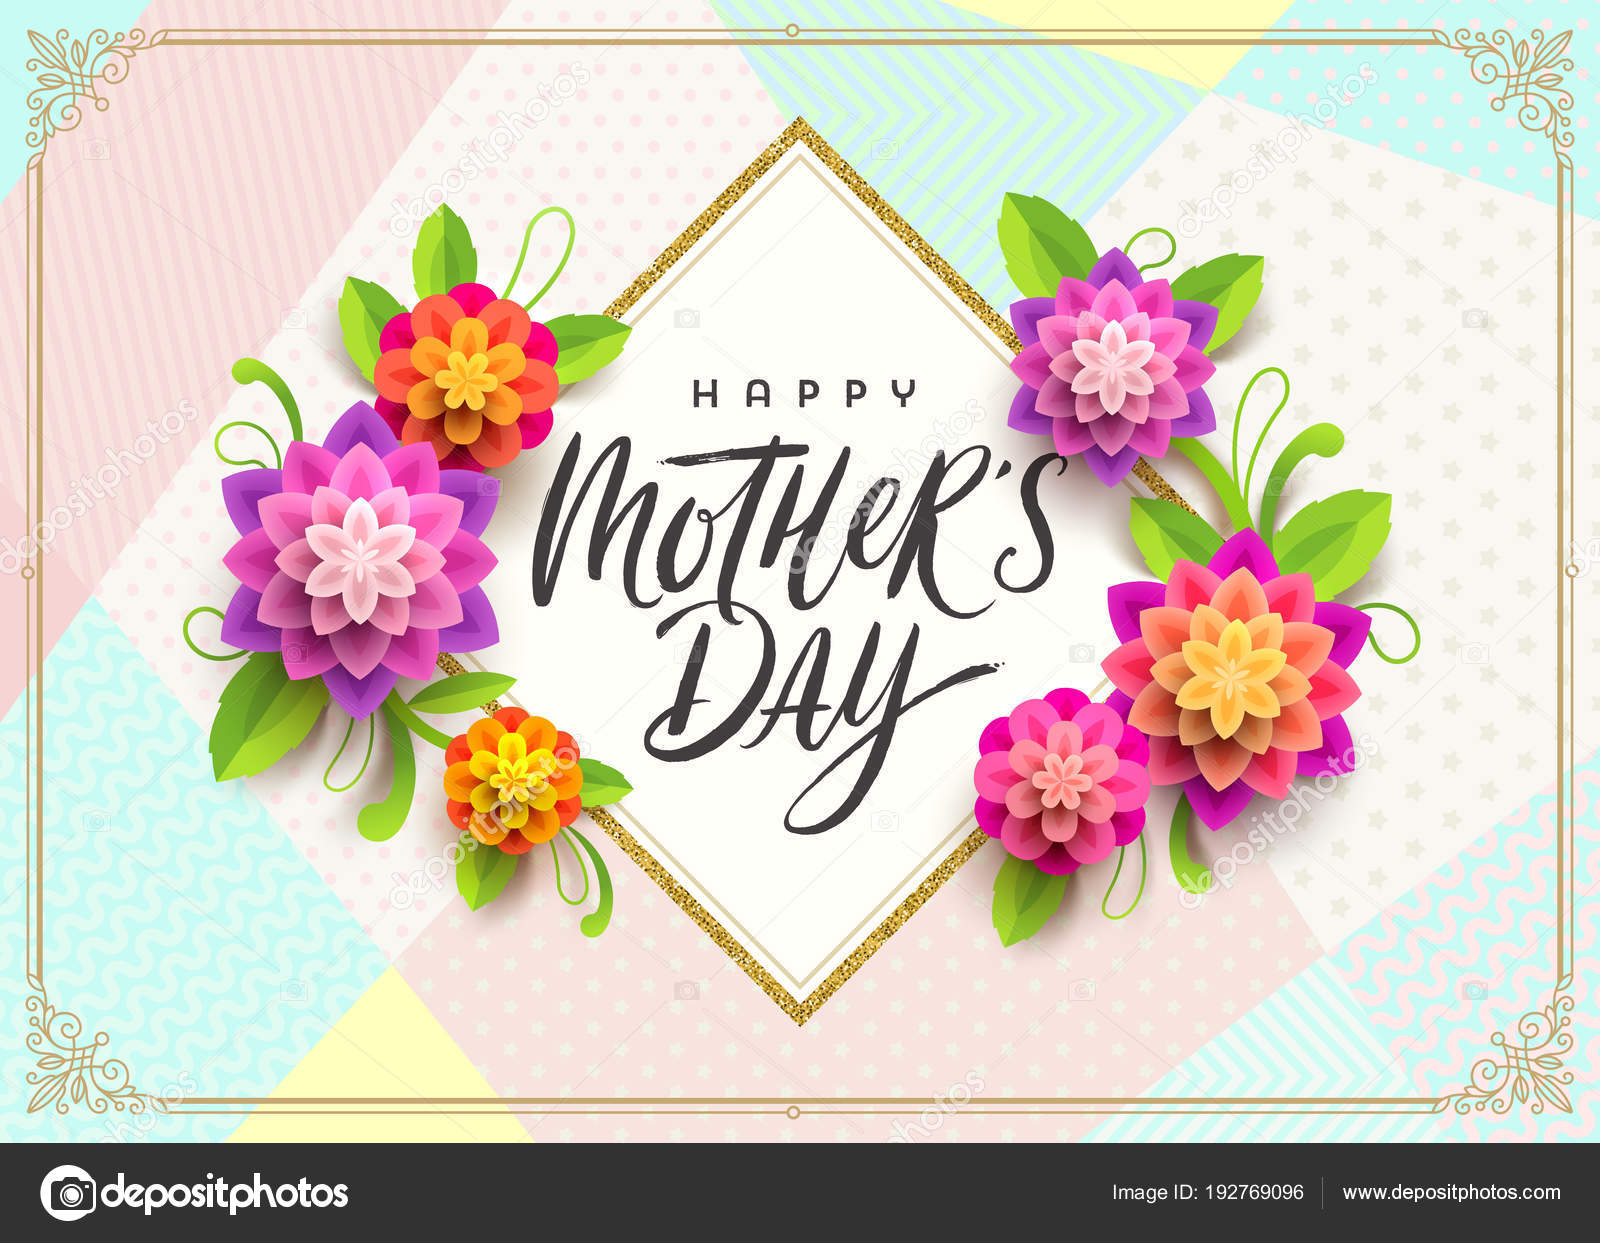 Happy Mothers Day Greeting Card Brush Calligraphy Greeting And